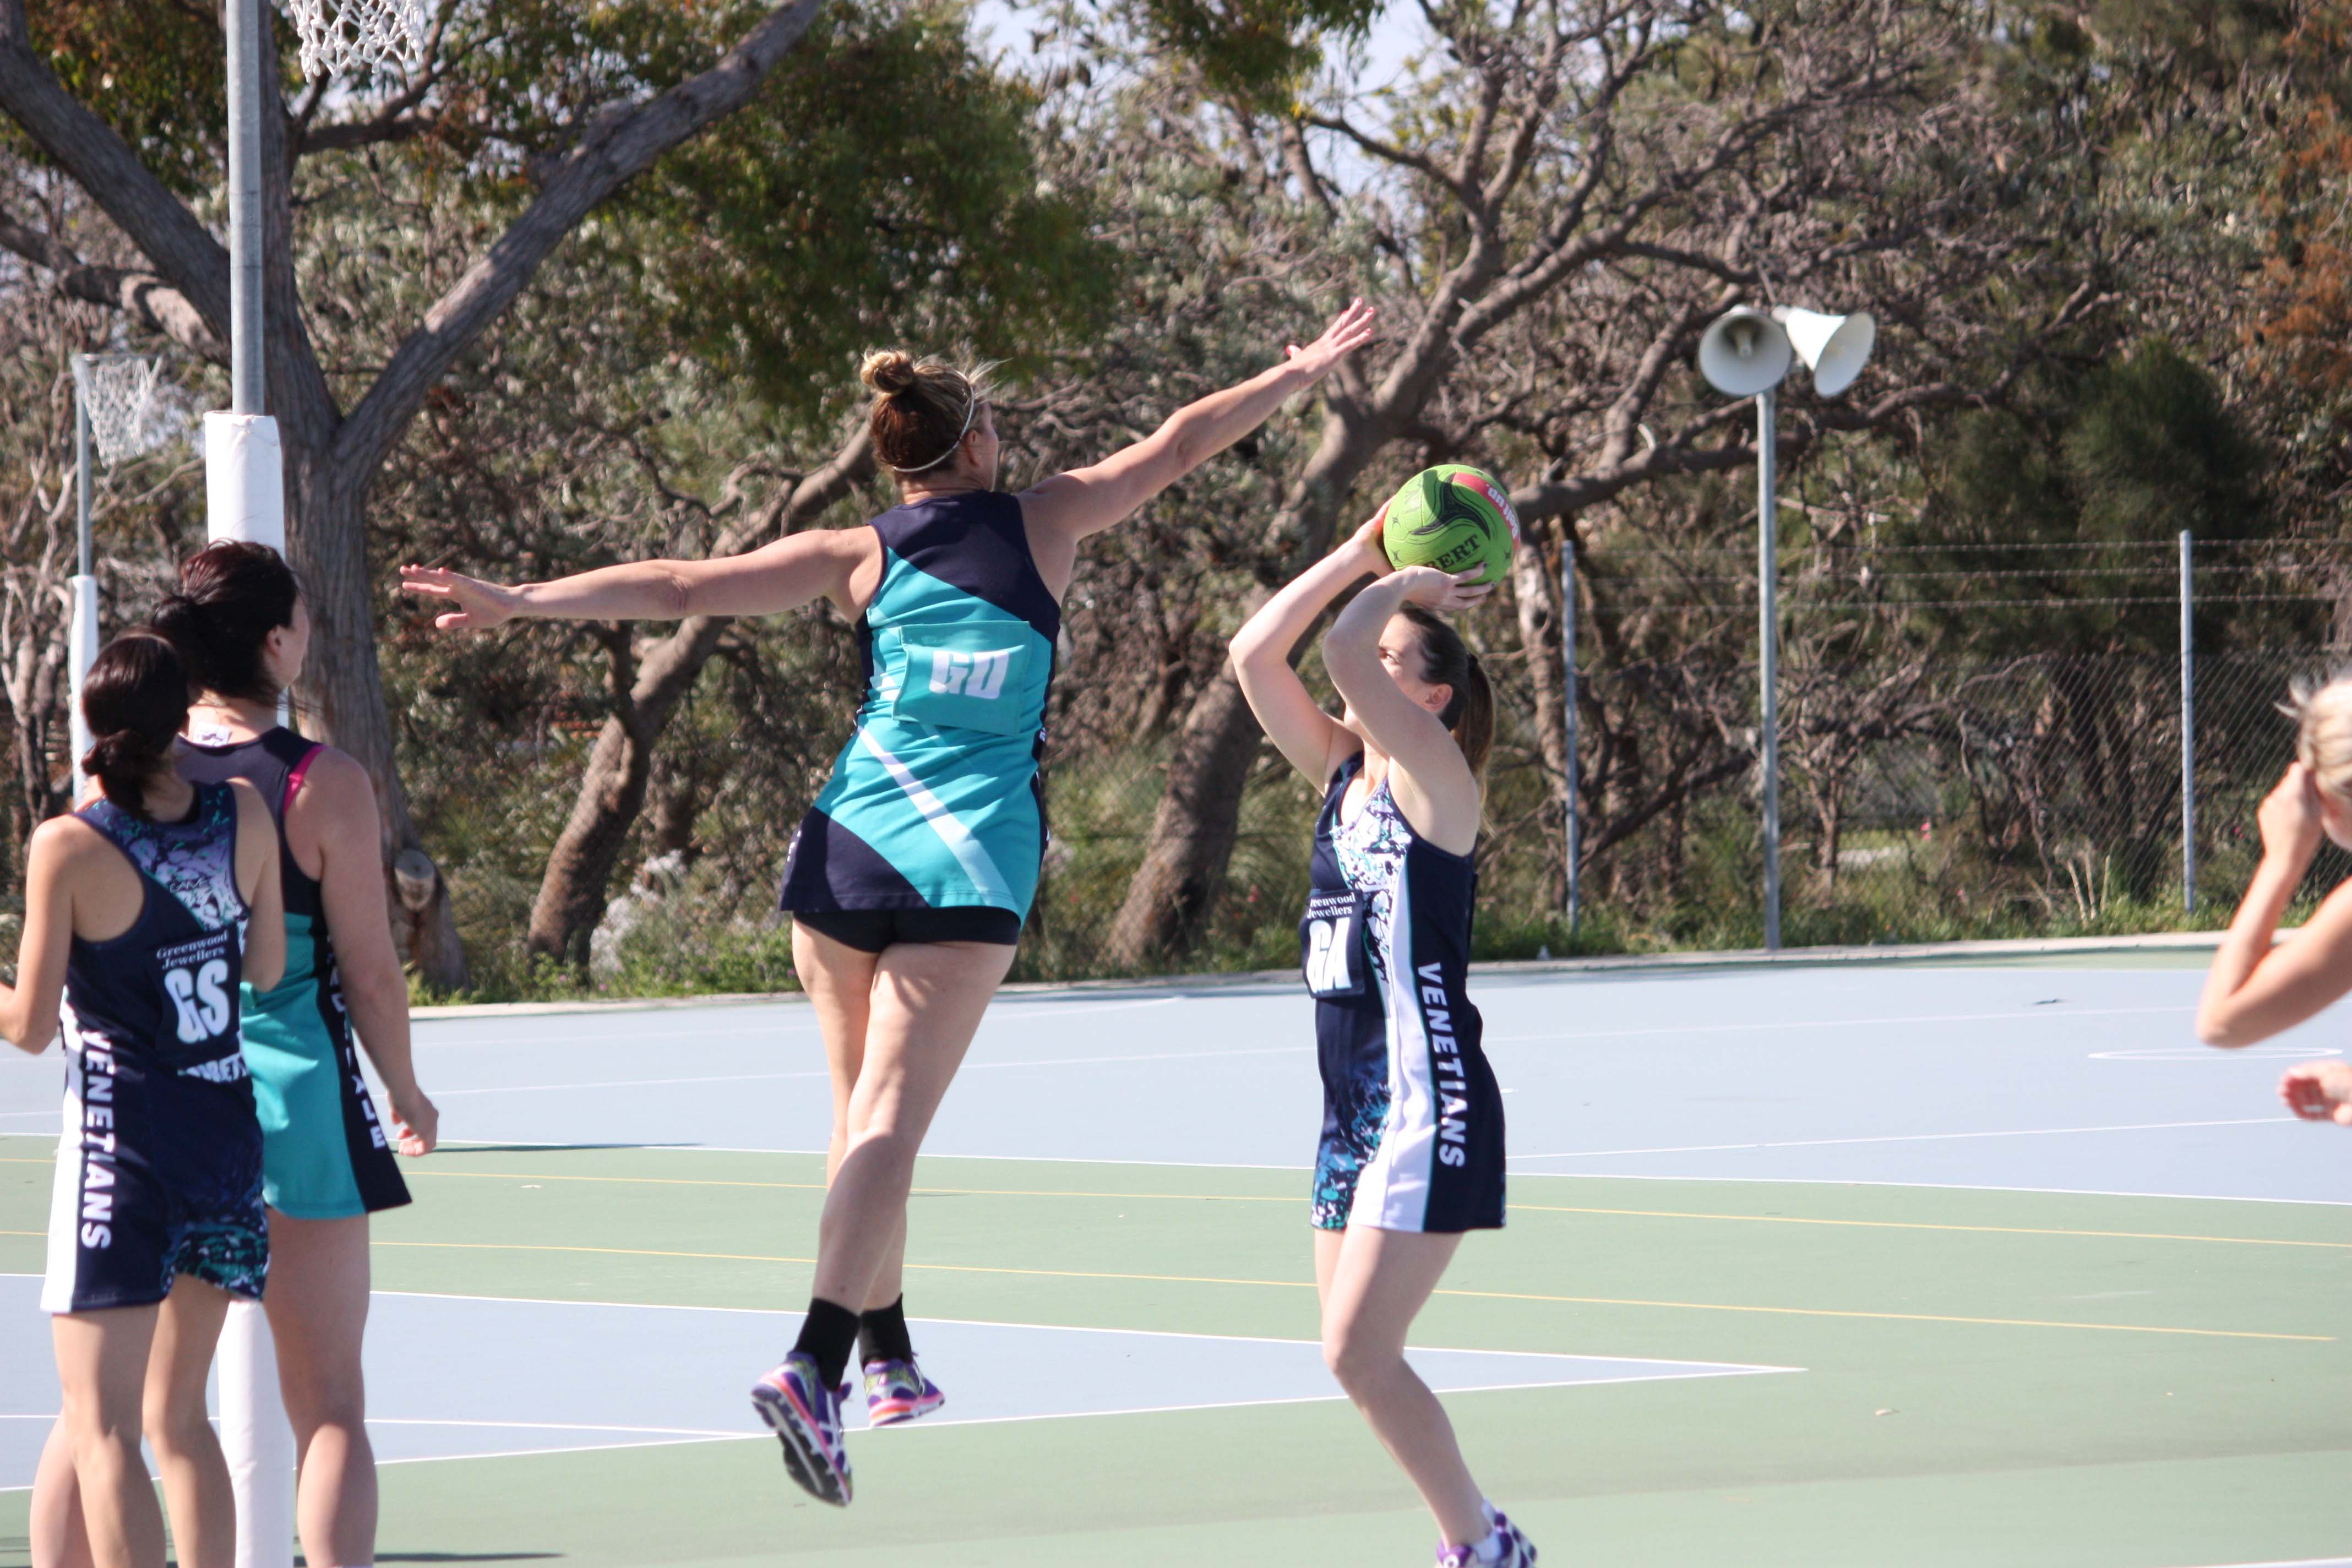 Landsdale Netball Club Open Players12